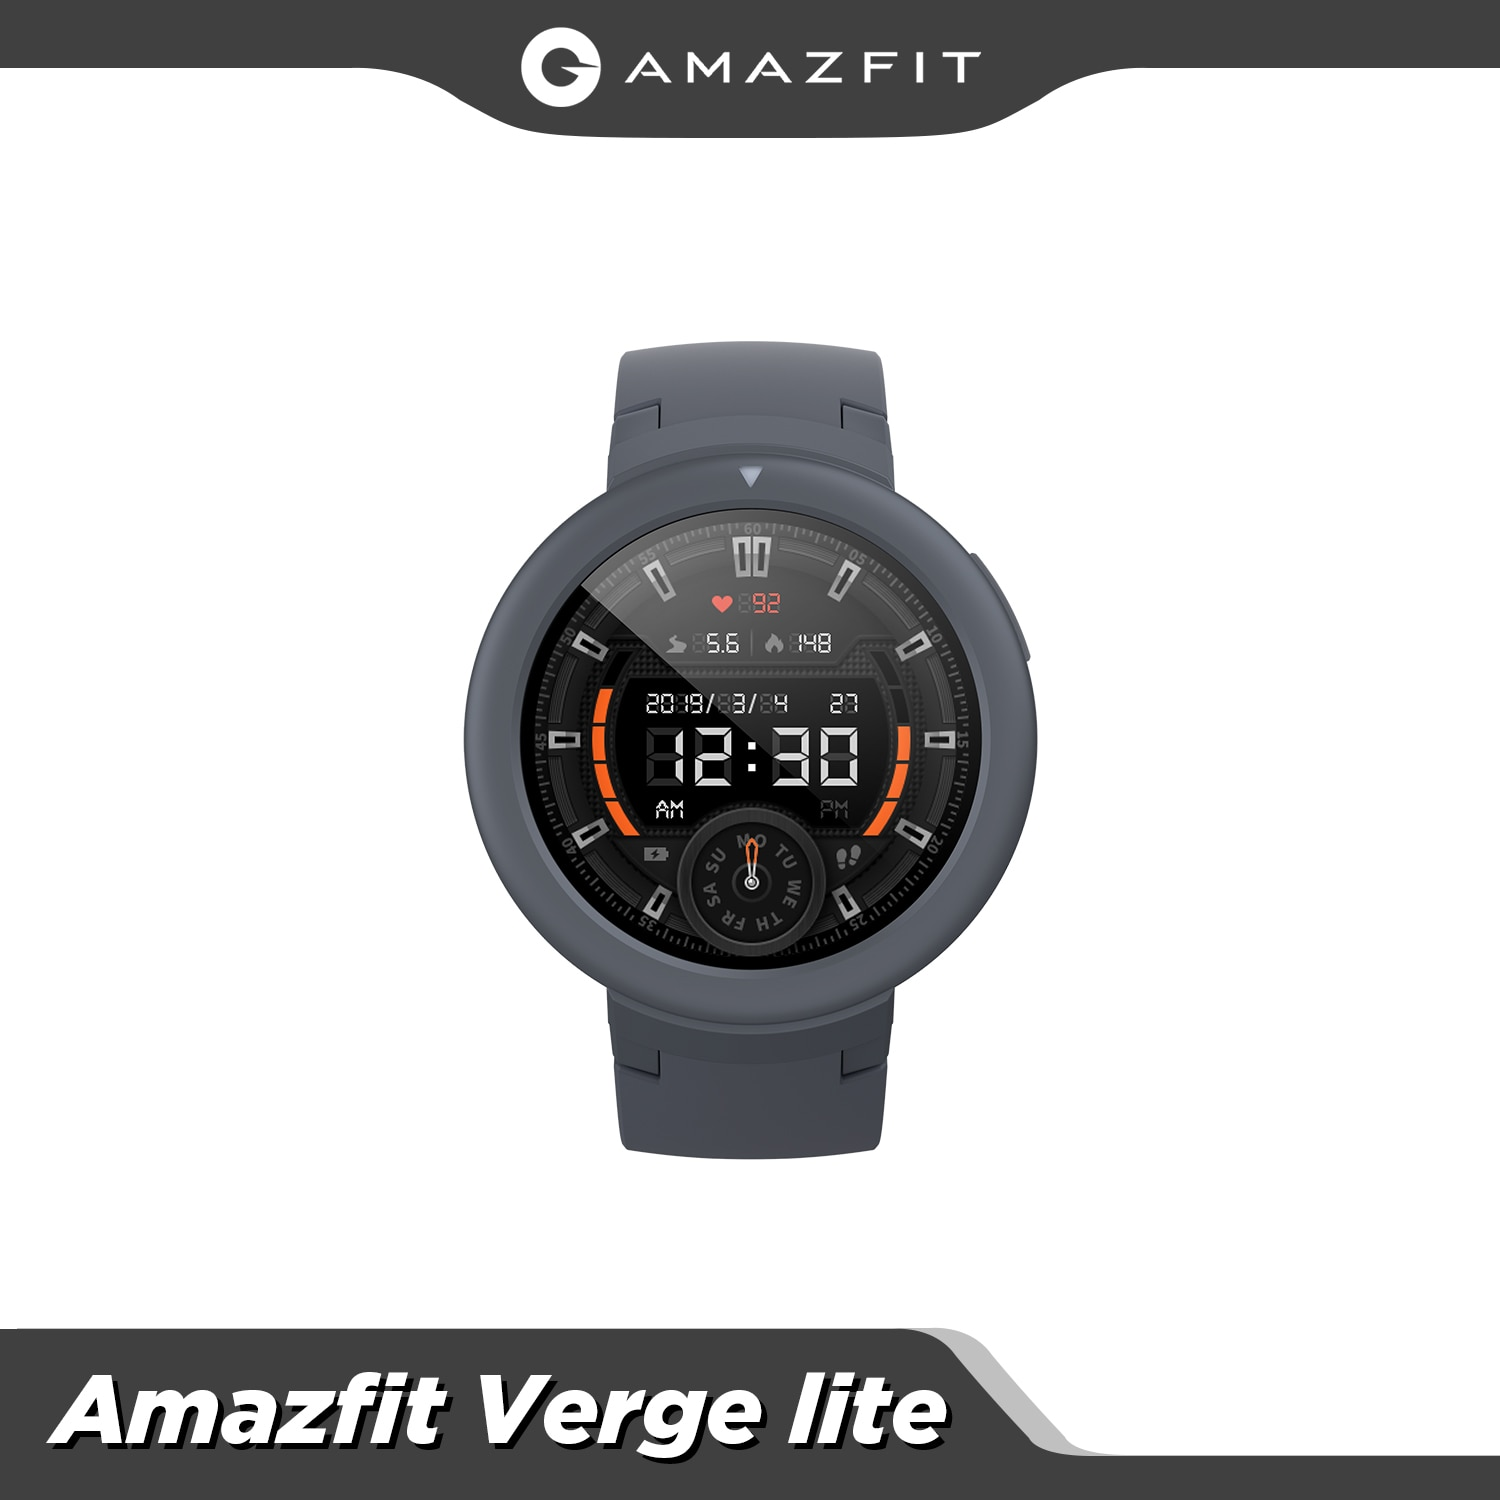 In stock Global Amazfit Verge Lite Smartwatch IP68 Smart Watch GPS GLONASS Long Battery Life AMOLED Display for Android iOS